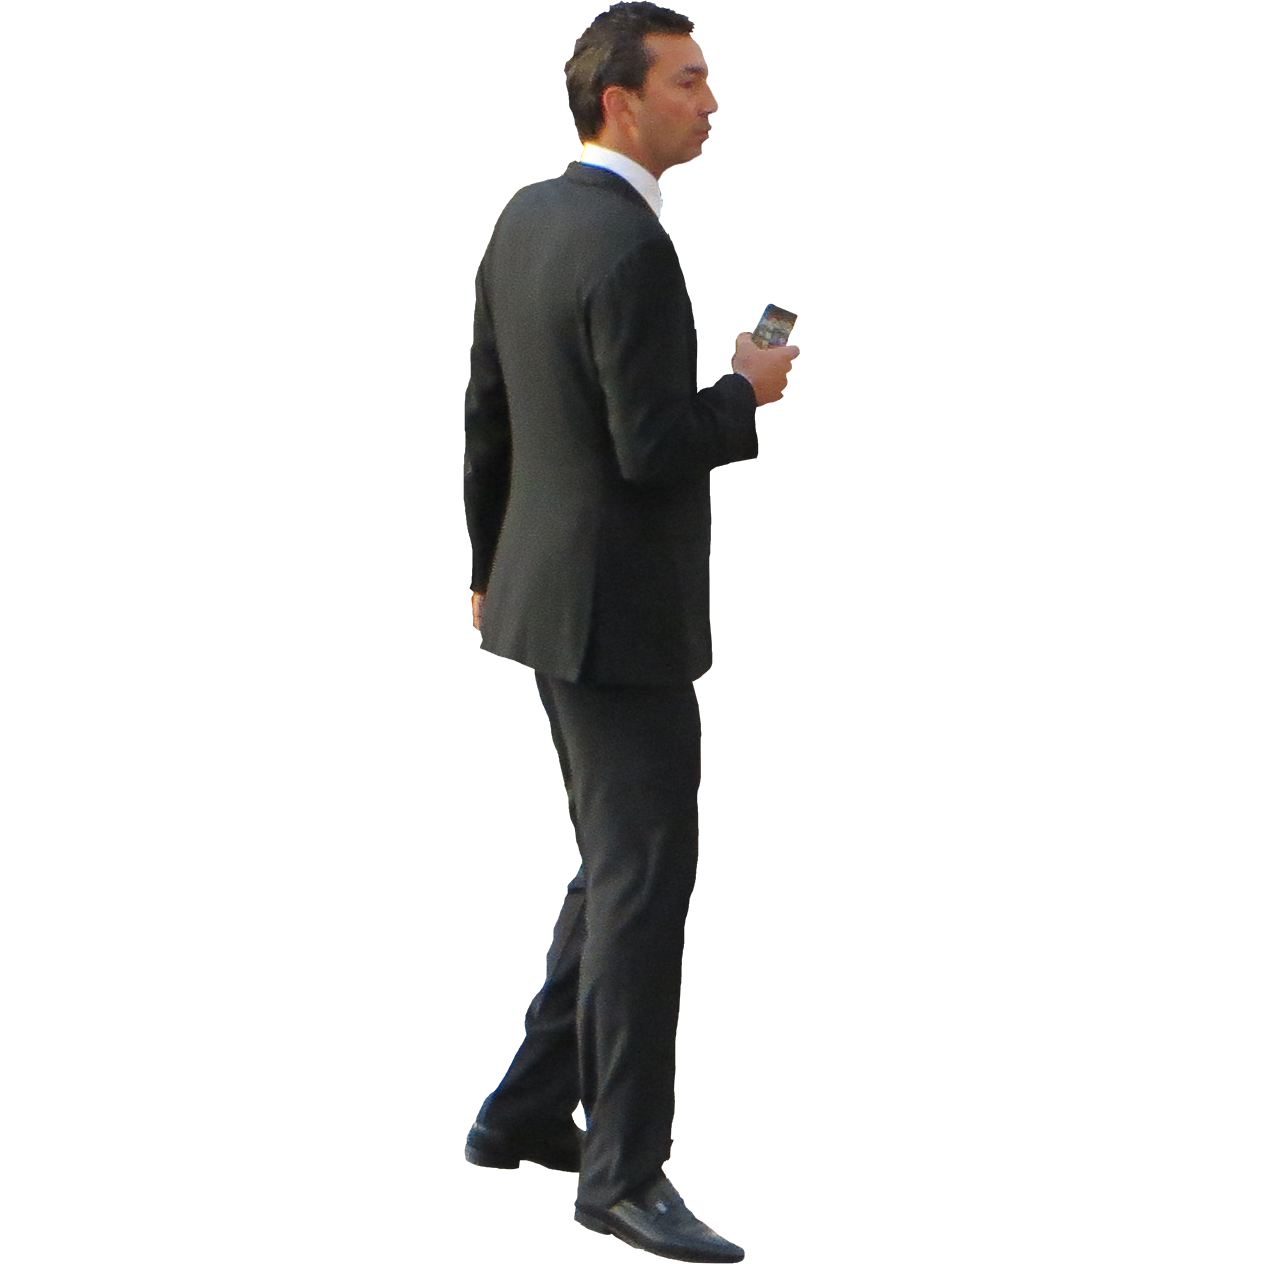 Person In A Suit PNG - 166833